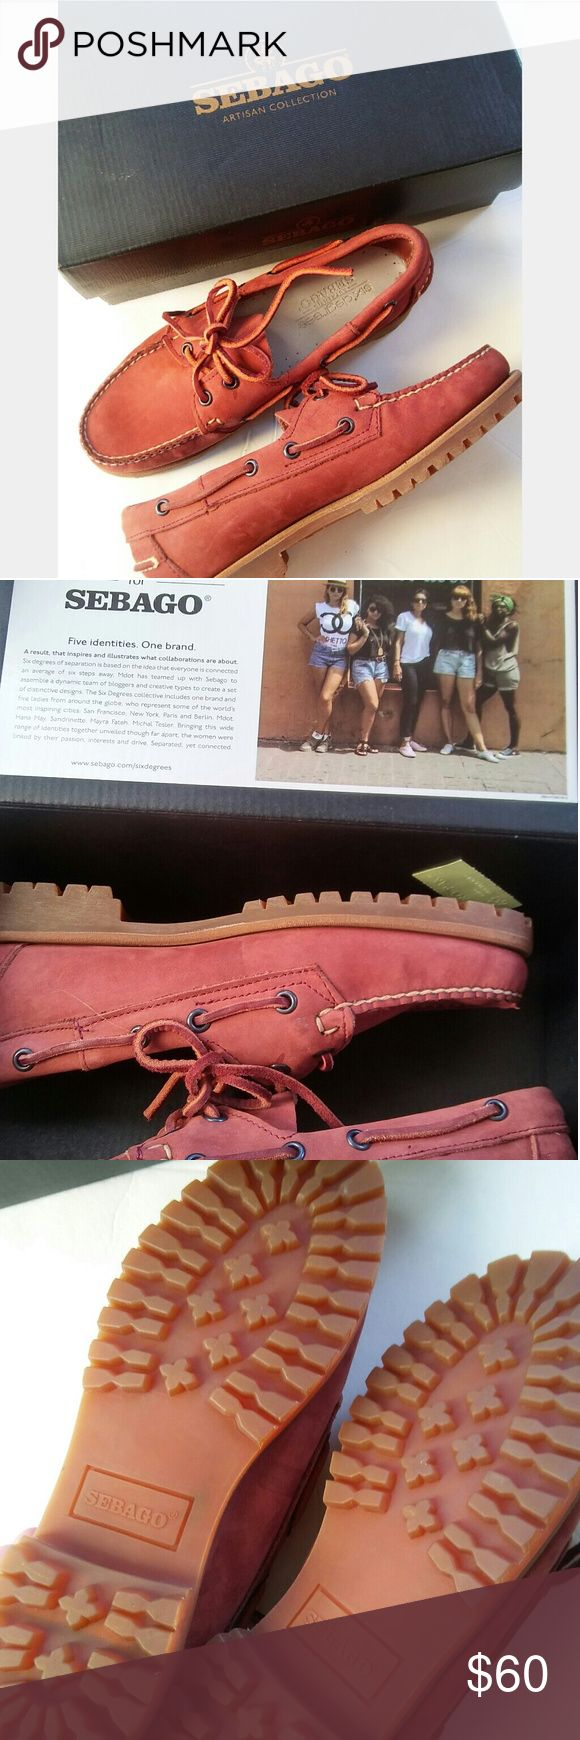 New! Sebago B50122 Women 7.5 Leather Boat Shoes Brand New! Never been used! With box! Sebago B50122 Women Size 7.5 Leather Boat Shoes Sebago Shoes